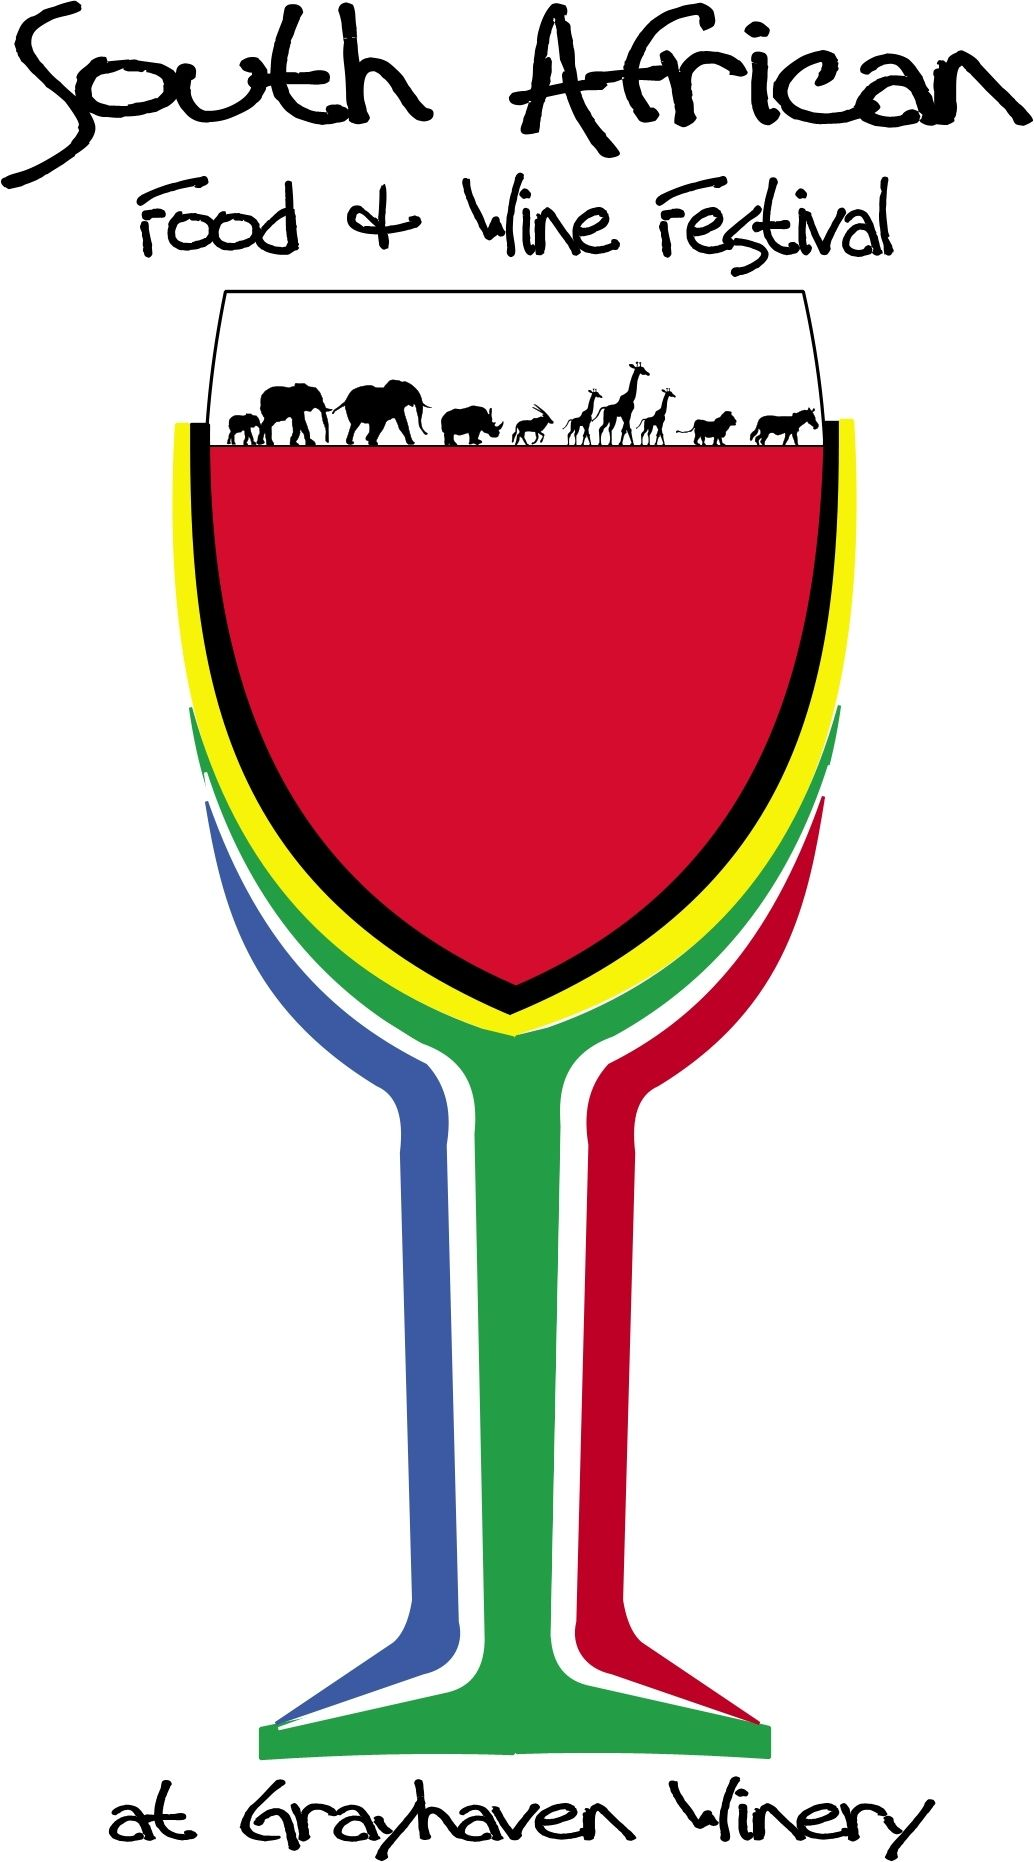 A Celebration Of The Food Wine Music And Culture Of South Africa Held Annually At Grayhaven Winery In With Images South African Flag South African Recipes Wine Festival